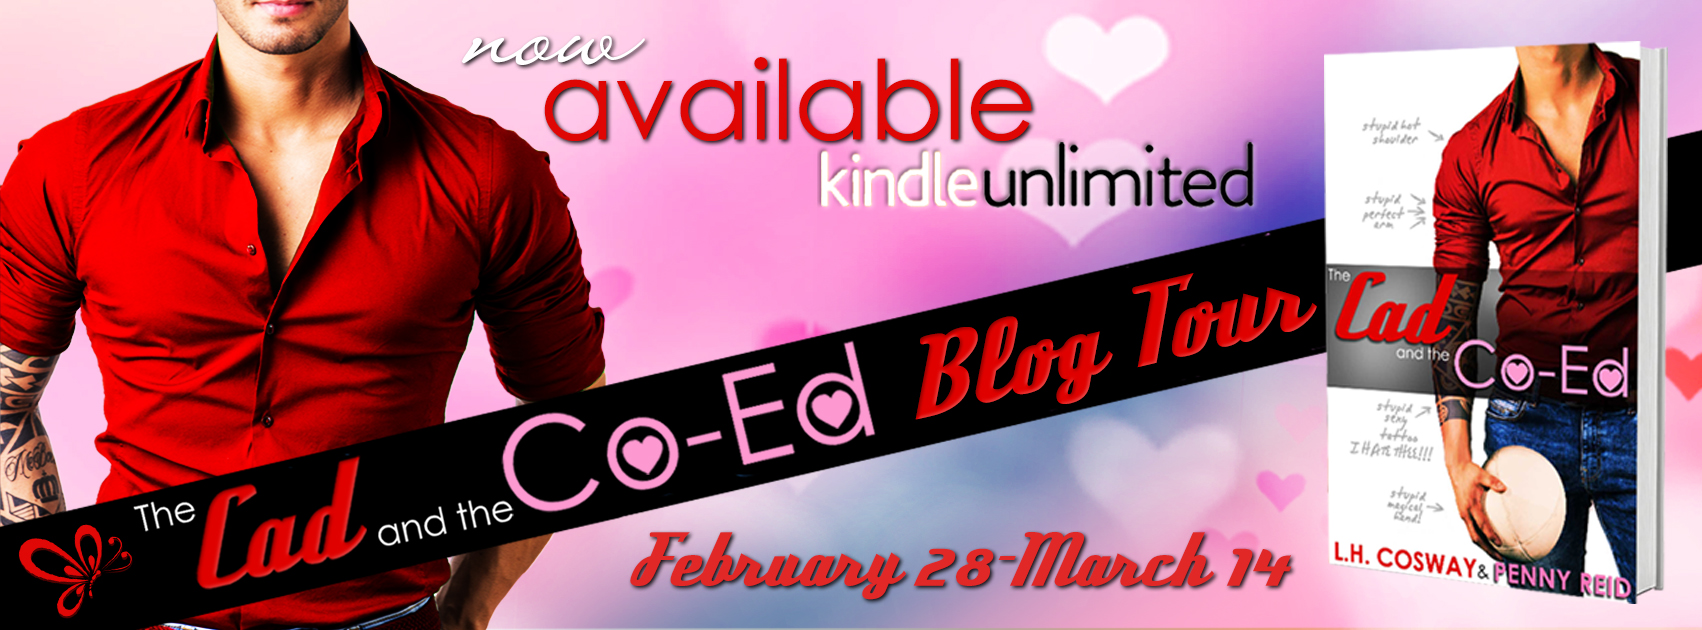 Blog Tour Review:  The Cad and the Co-Ed by Penny Reid & L. H. Cosway